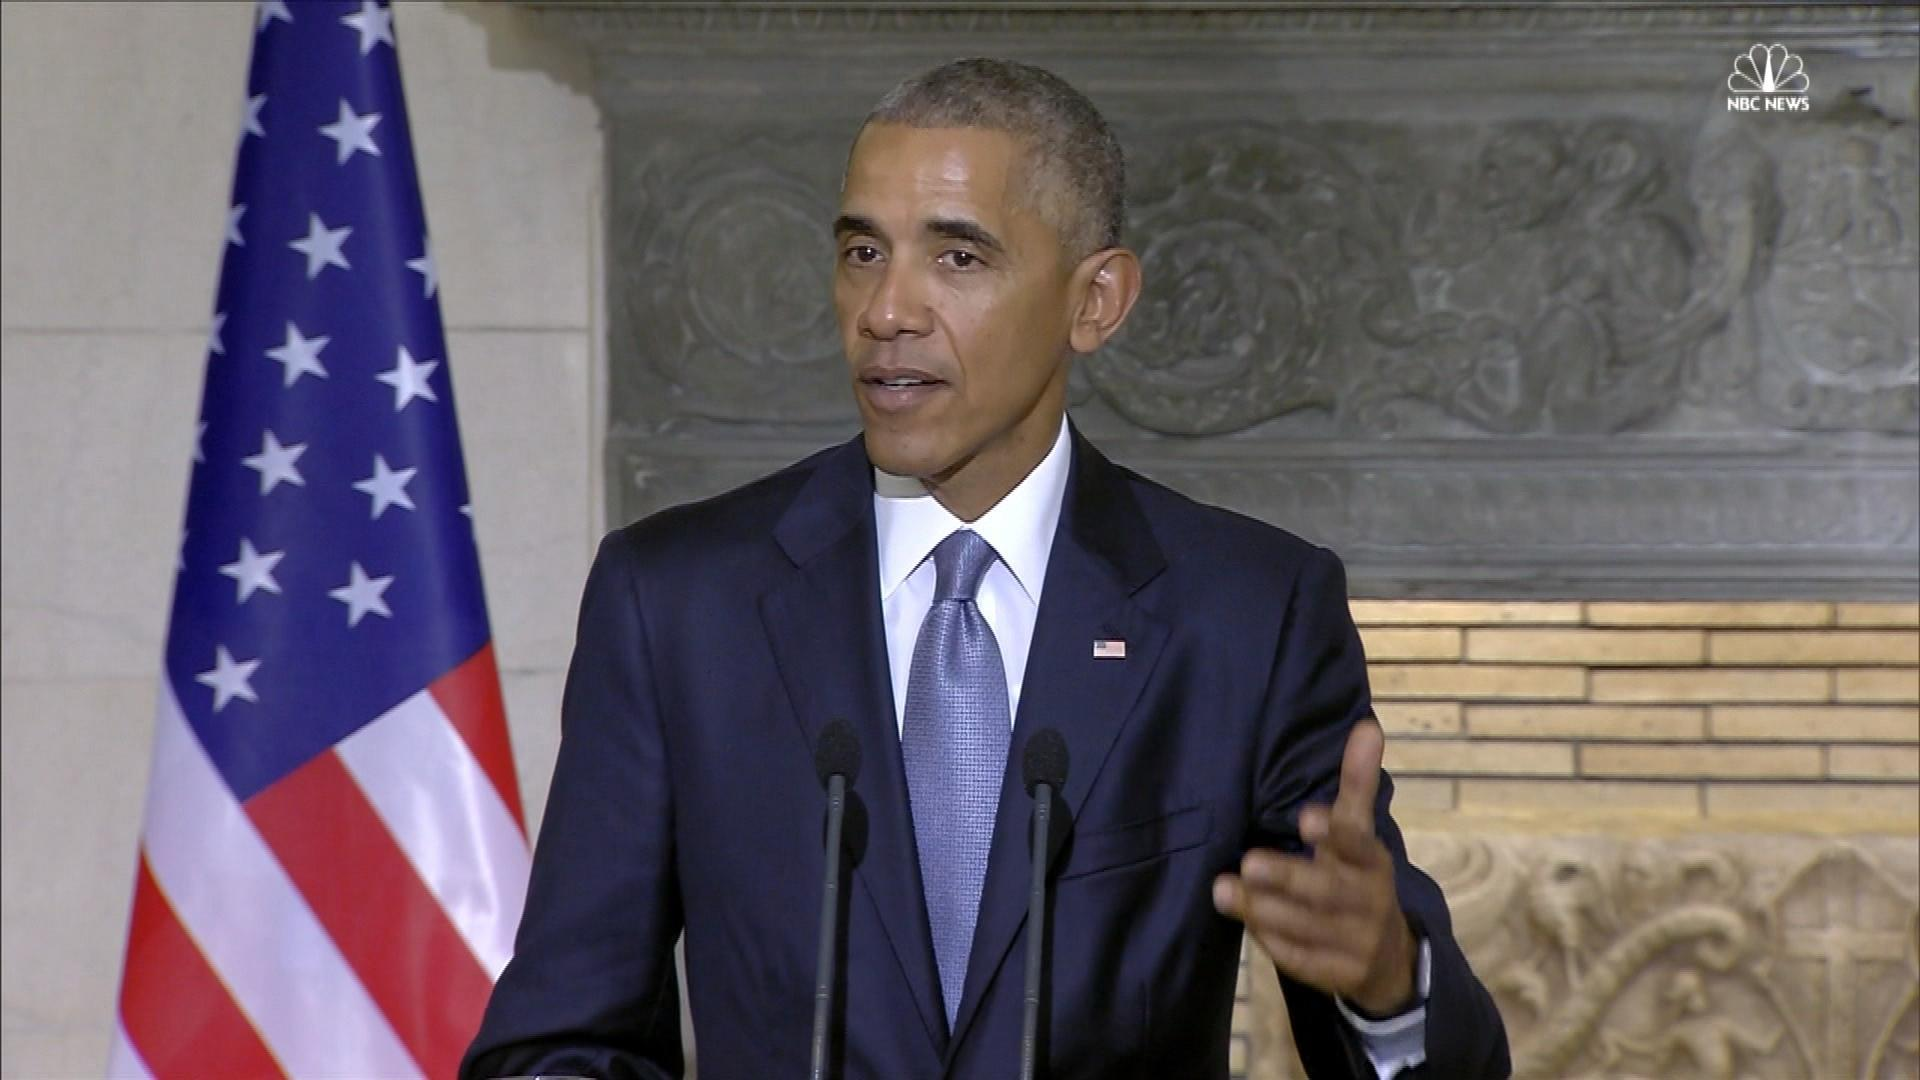 Obama During Final Foreign Trip I Still Don T Feel Responsible For Trump Nbc News